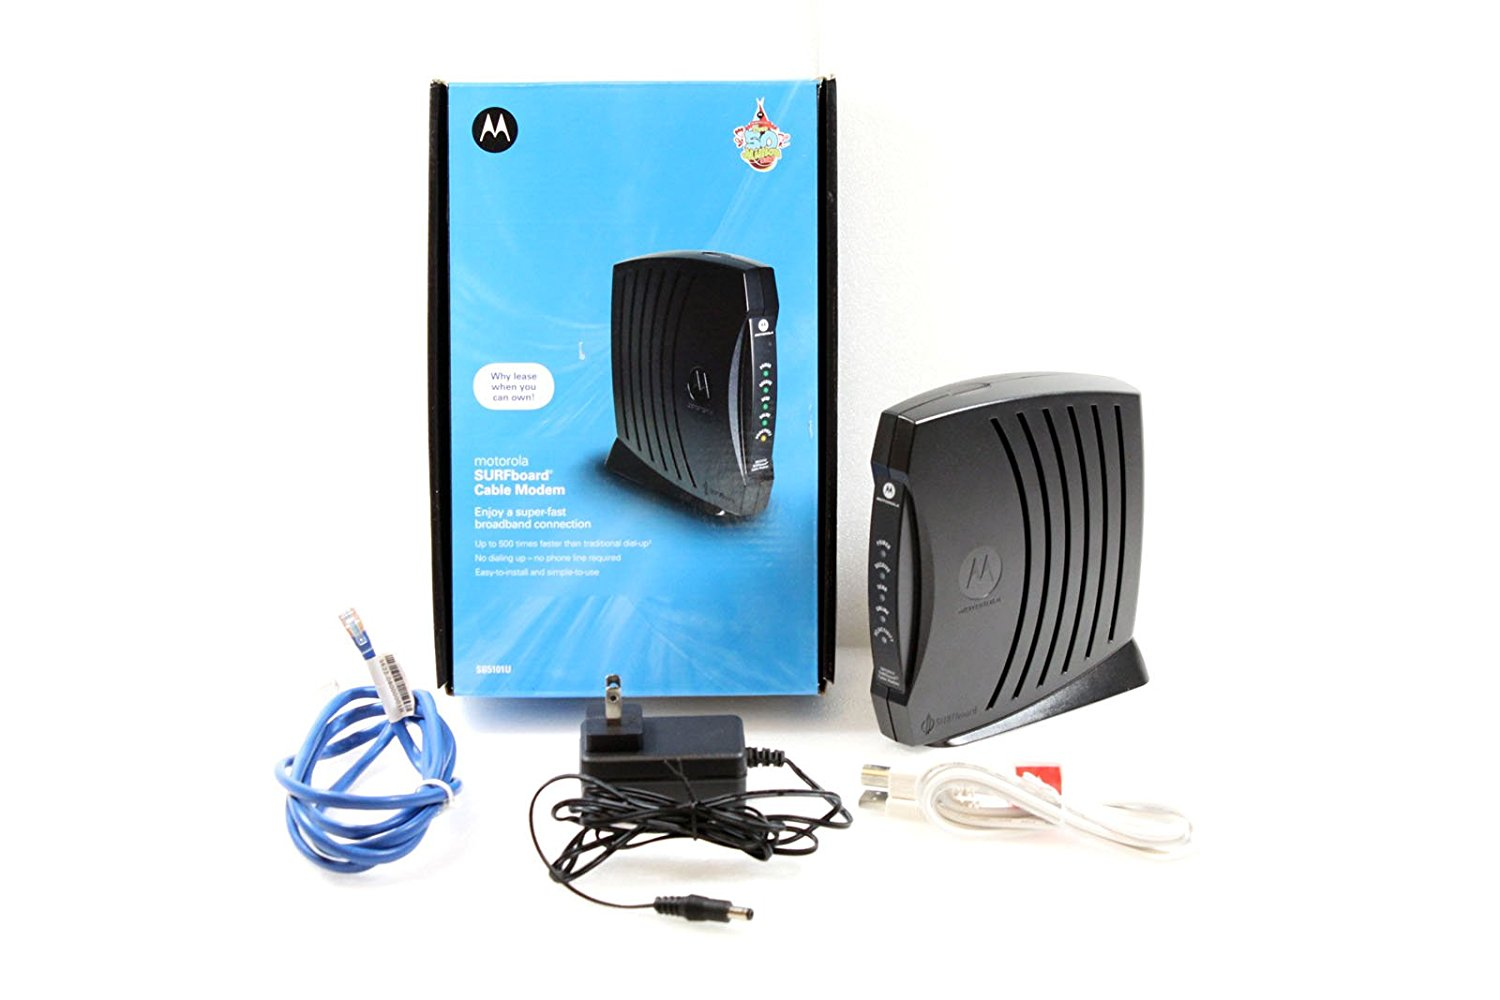 Cheap Sb5101 Modem, find Sb5101 Modem deals on line at Alibaba.com